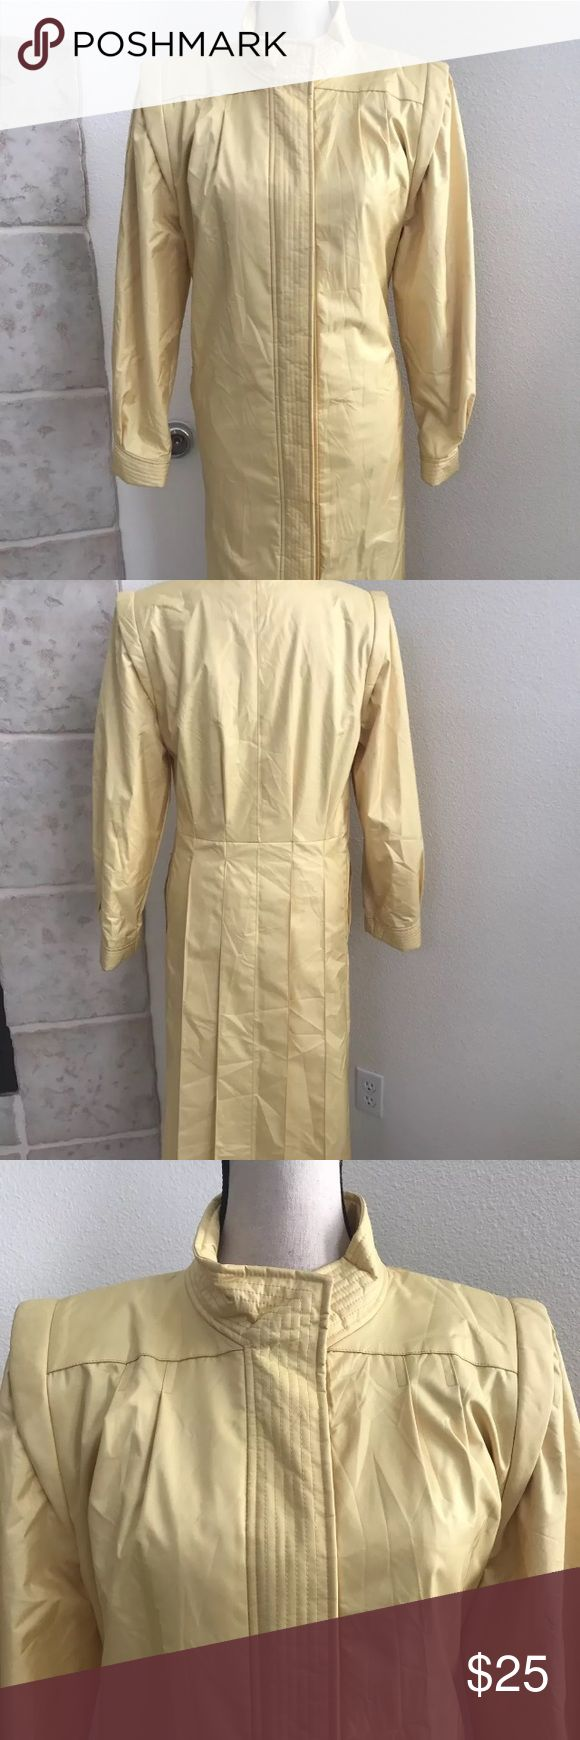 """🌹Vtg J Gallery Rain coat Trench Coat size 11/12P You are buying Vintage J GALLERY Rain Coat Trench WINTER Nylon Coat Women Petite 11-12 Yellow.  STYLE: Trench Coat/ raincoat  COLOR: Yellow  SIZE: Petite 11-12  CONDITION: Excellent condition with no signs of wear, holes, rips.  MEASUREMENTS: LAYING FLAT: Length- 44"""" Shoulder to shoulder- 16"""" Armpit to Armpit(across)- 18"""" Waist(across)- 16"""" Hips(across)- 17"""" Armhole Depth- 23""""  HWR Clst J. Gallery Jackets & Coats Trench Coats"""